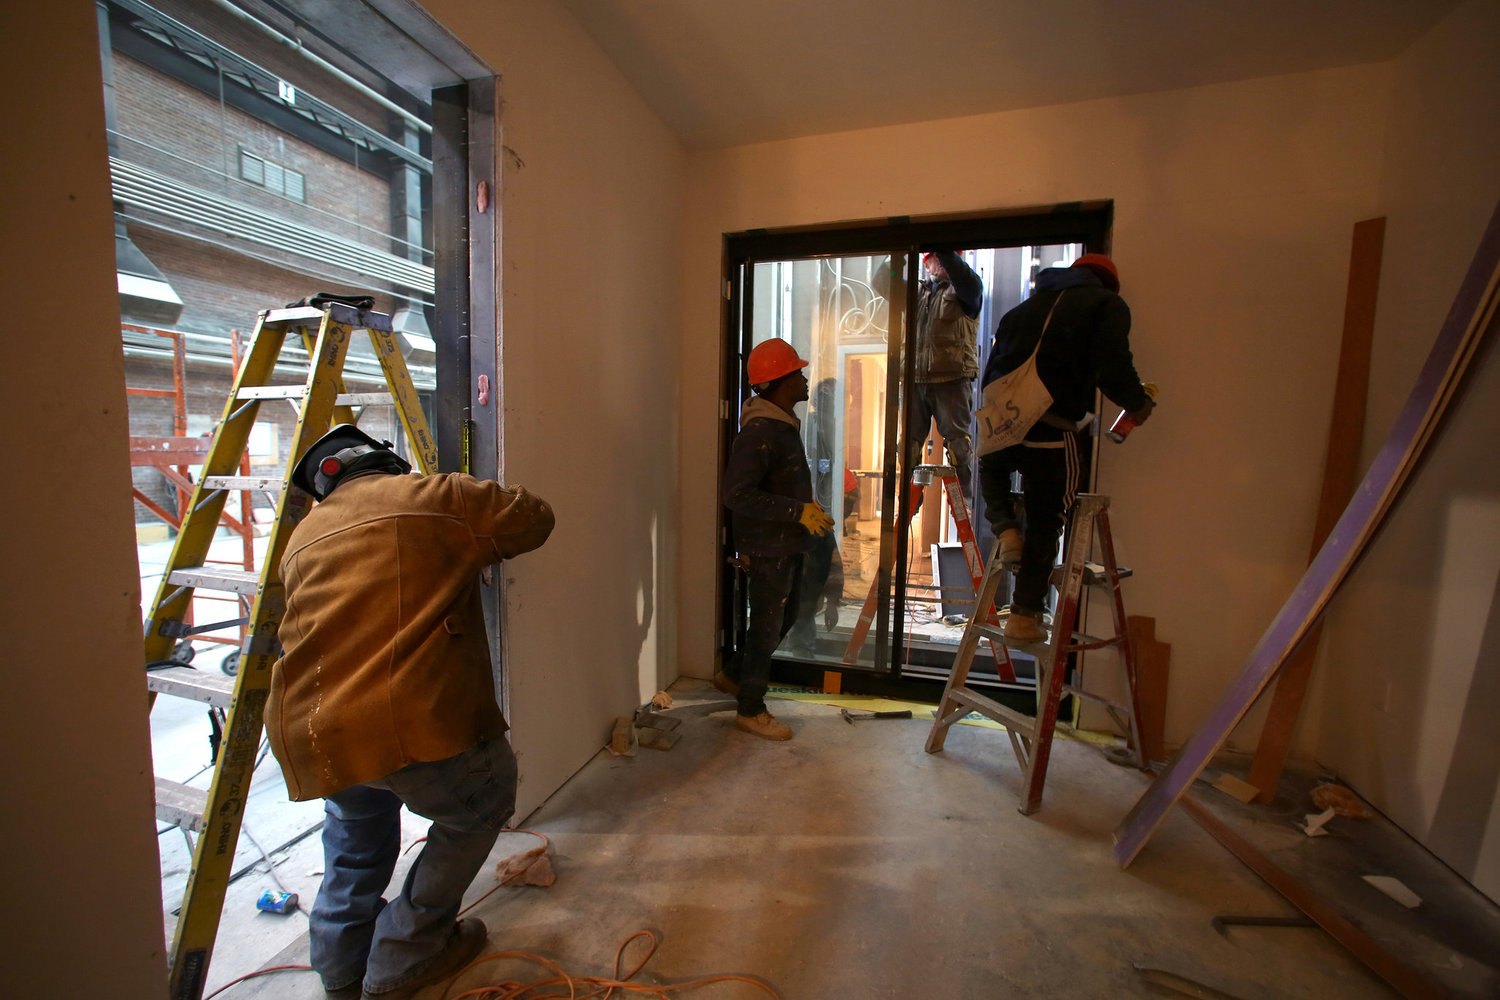 Workers installing a sliding window in the main living area of an apartment.